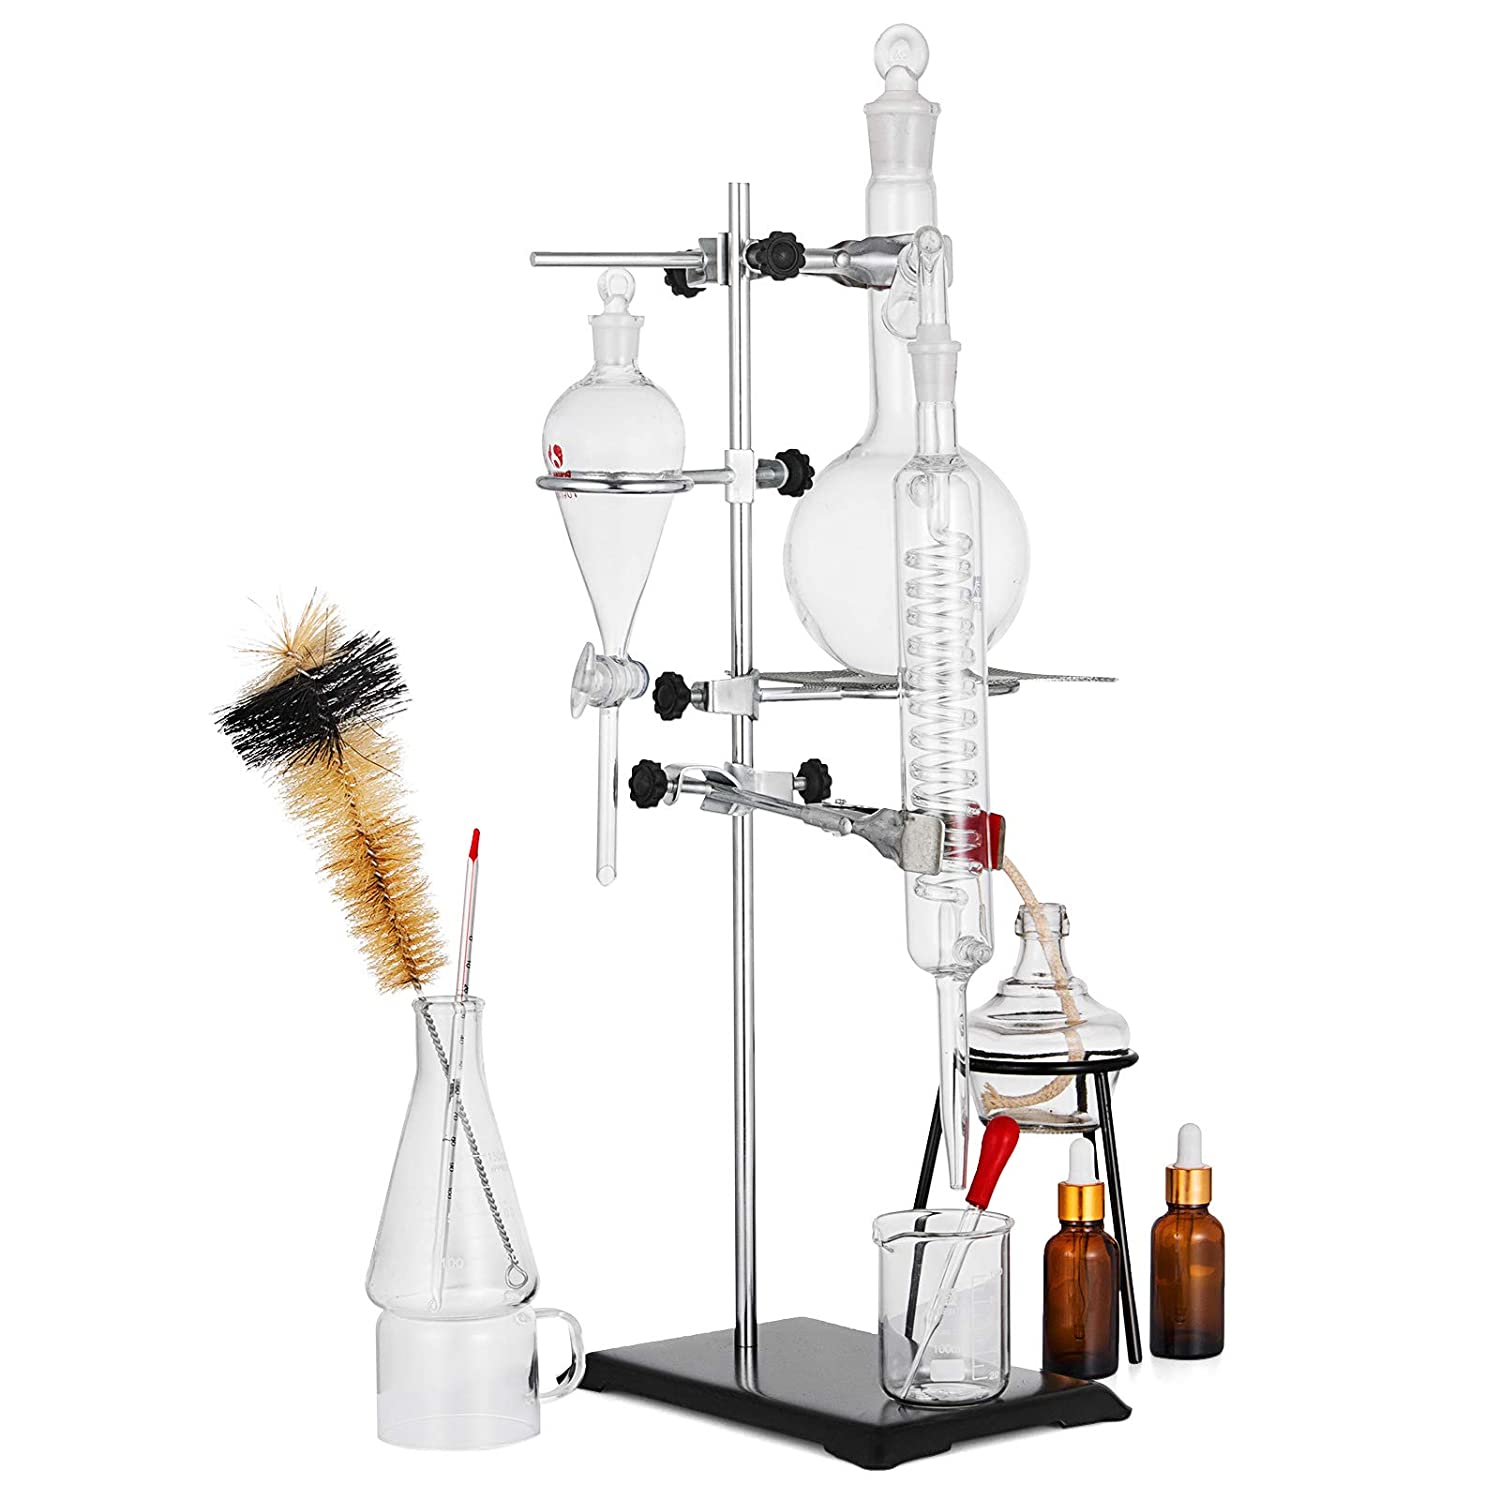 XFY Verre Unit/é de Distillation Laborchemie Aides /À lenseignement du Mat/ériel Denseignement Exp/érience Distiller Chimique Kit Dextraction Verrerie Sp/éciale